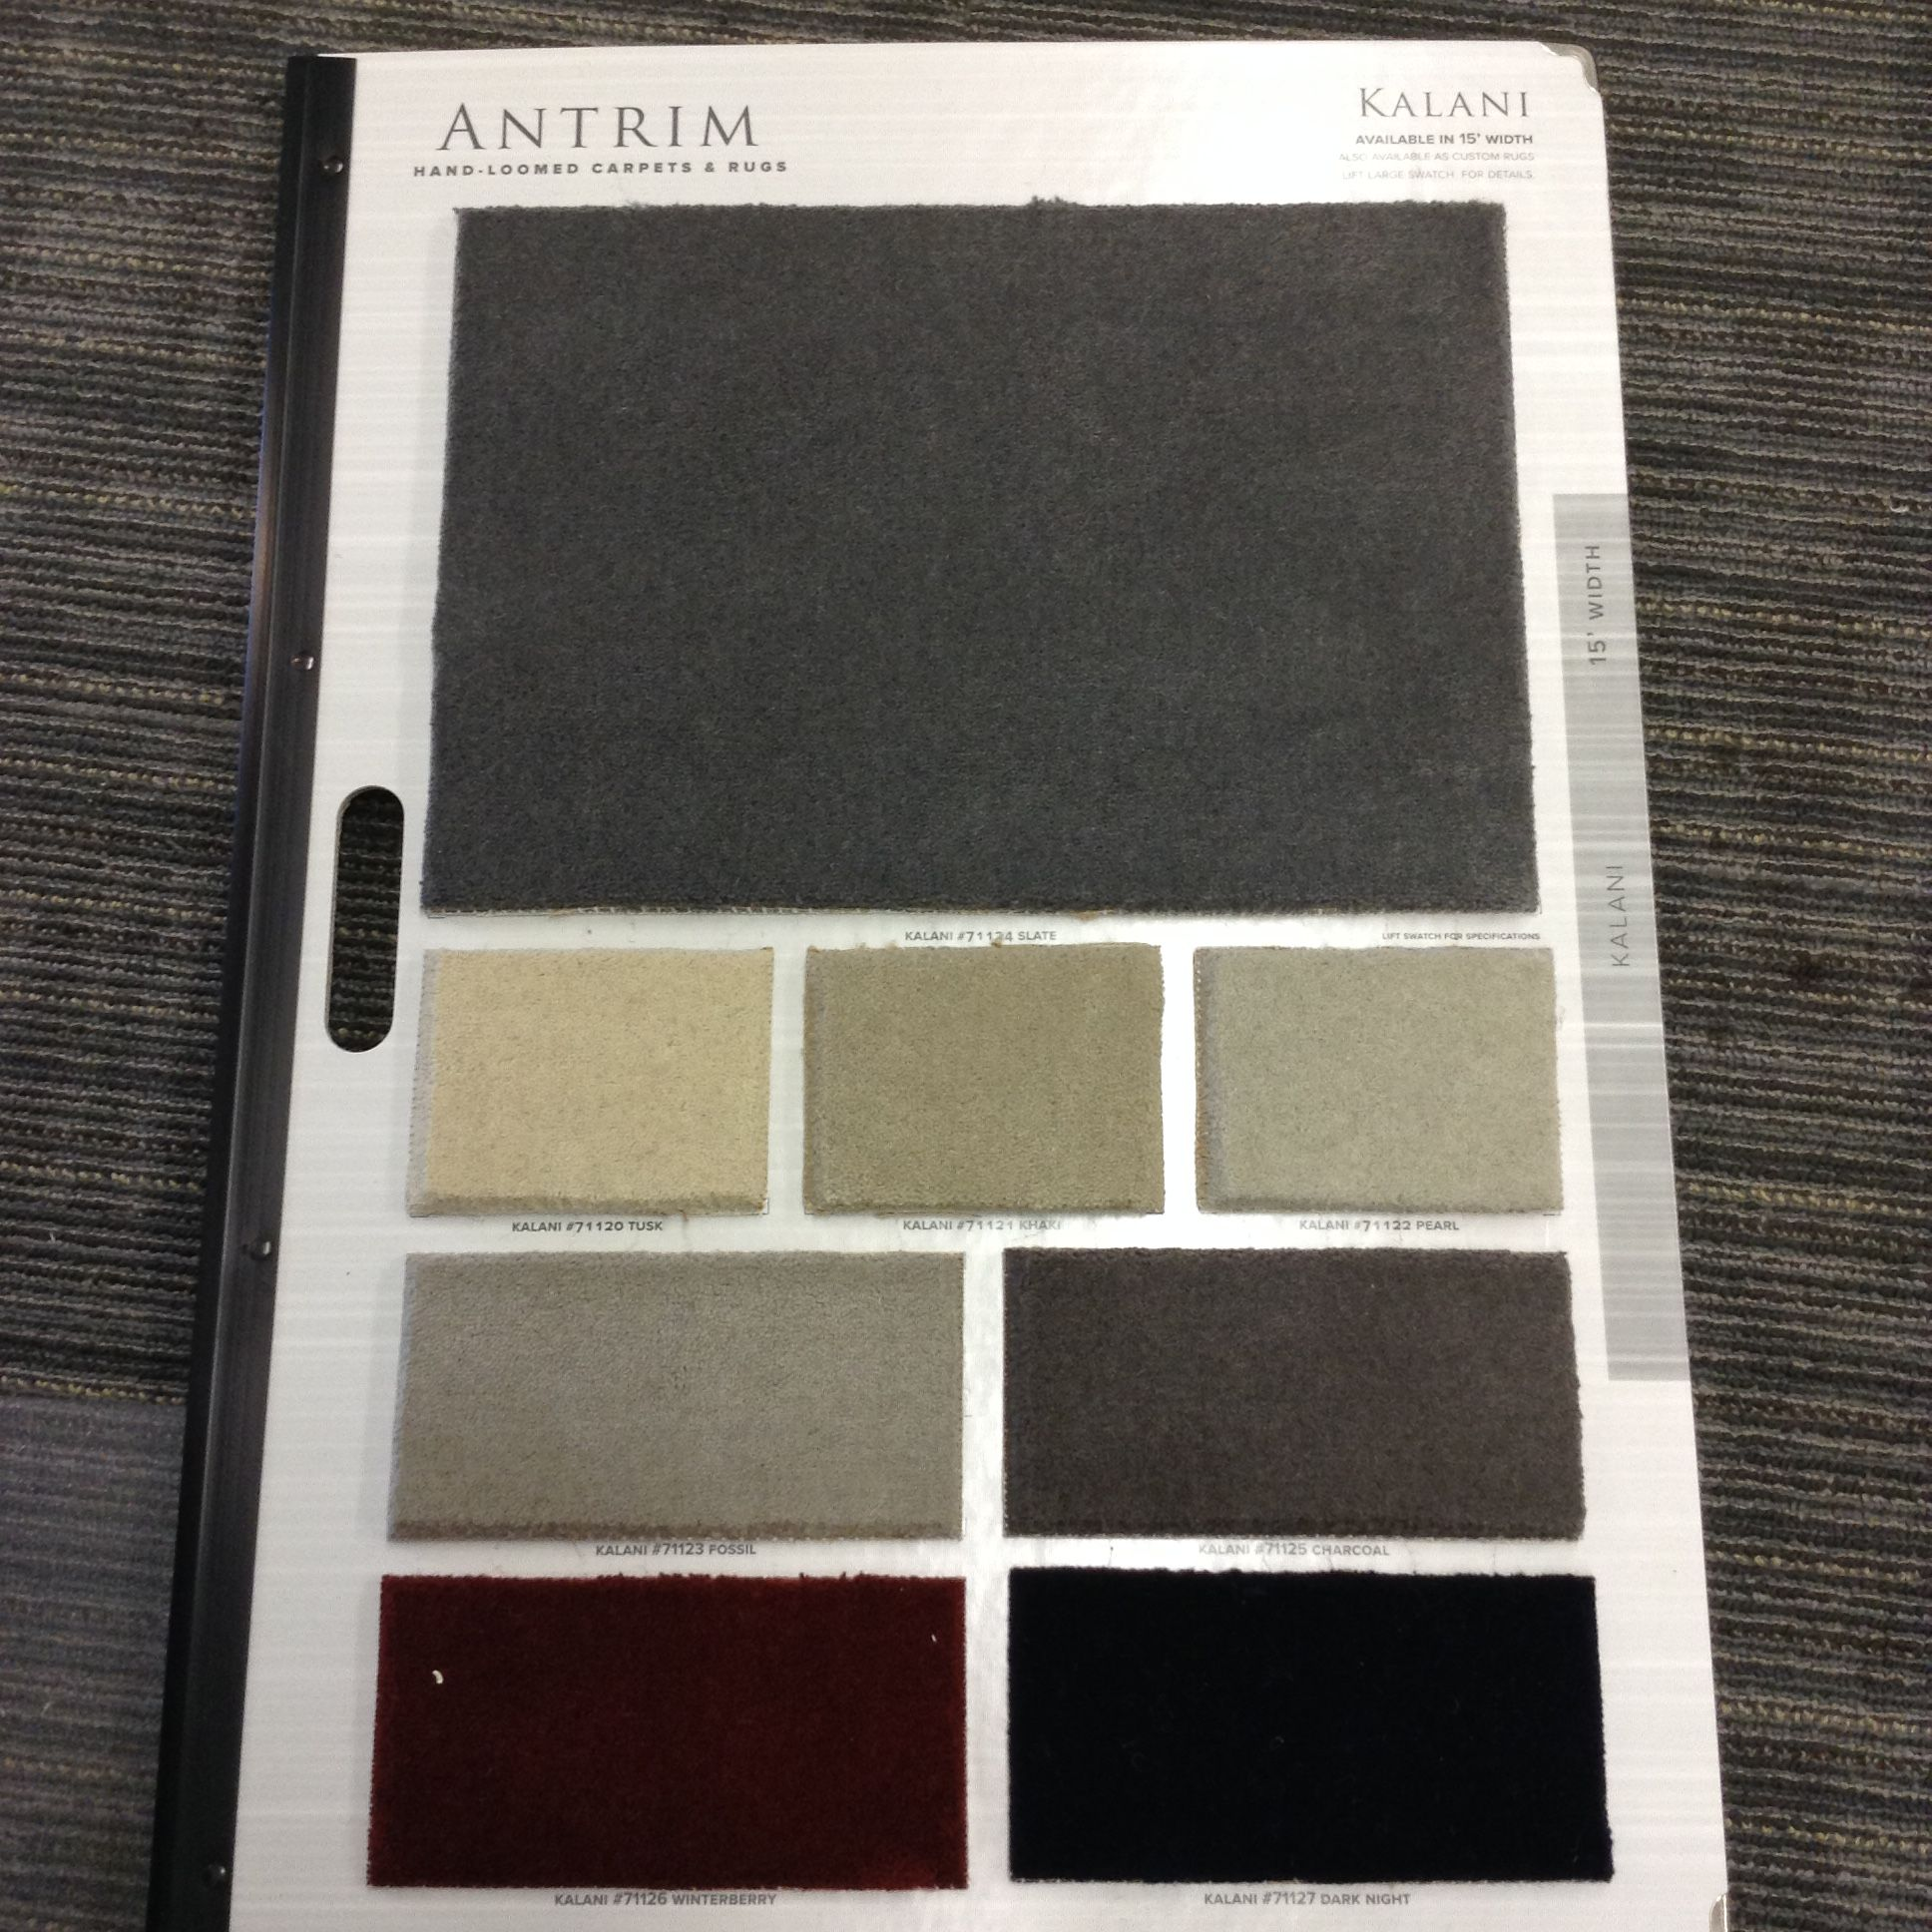 Style Kalani Content 100 Wool Width 15ft Colr Palette Greytones And Colorful Hues Soft And Inviting Wool Velvet Stanton Color Kalani